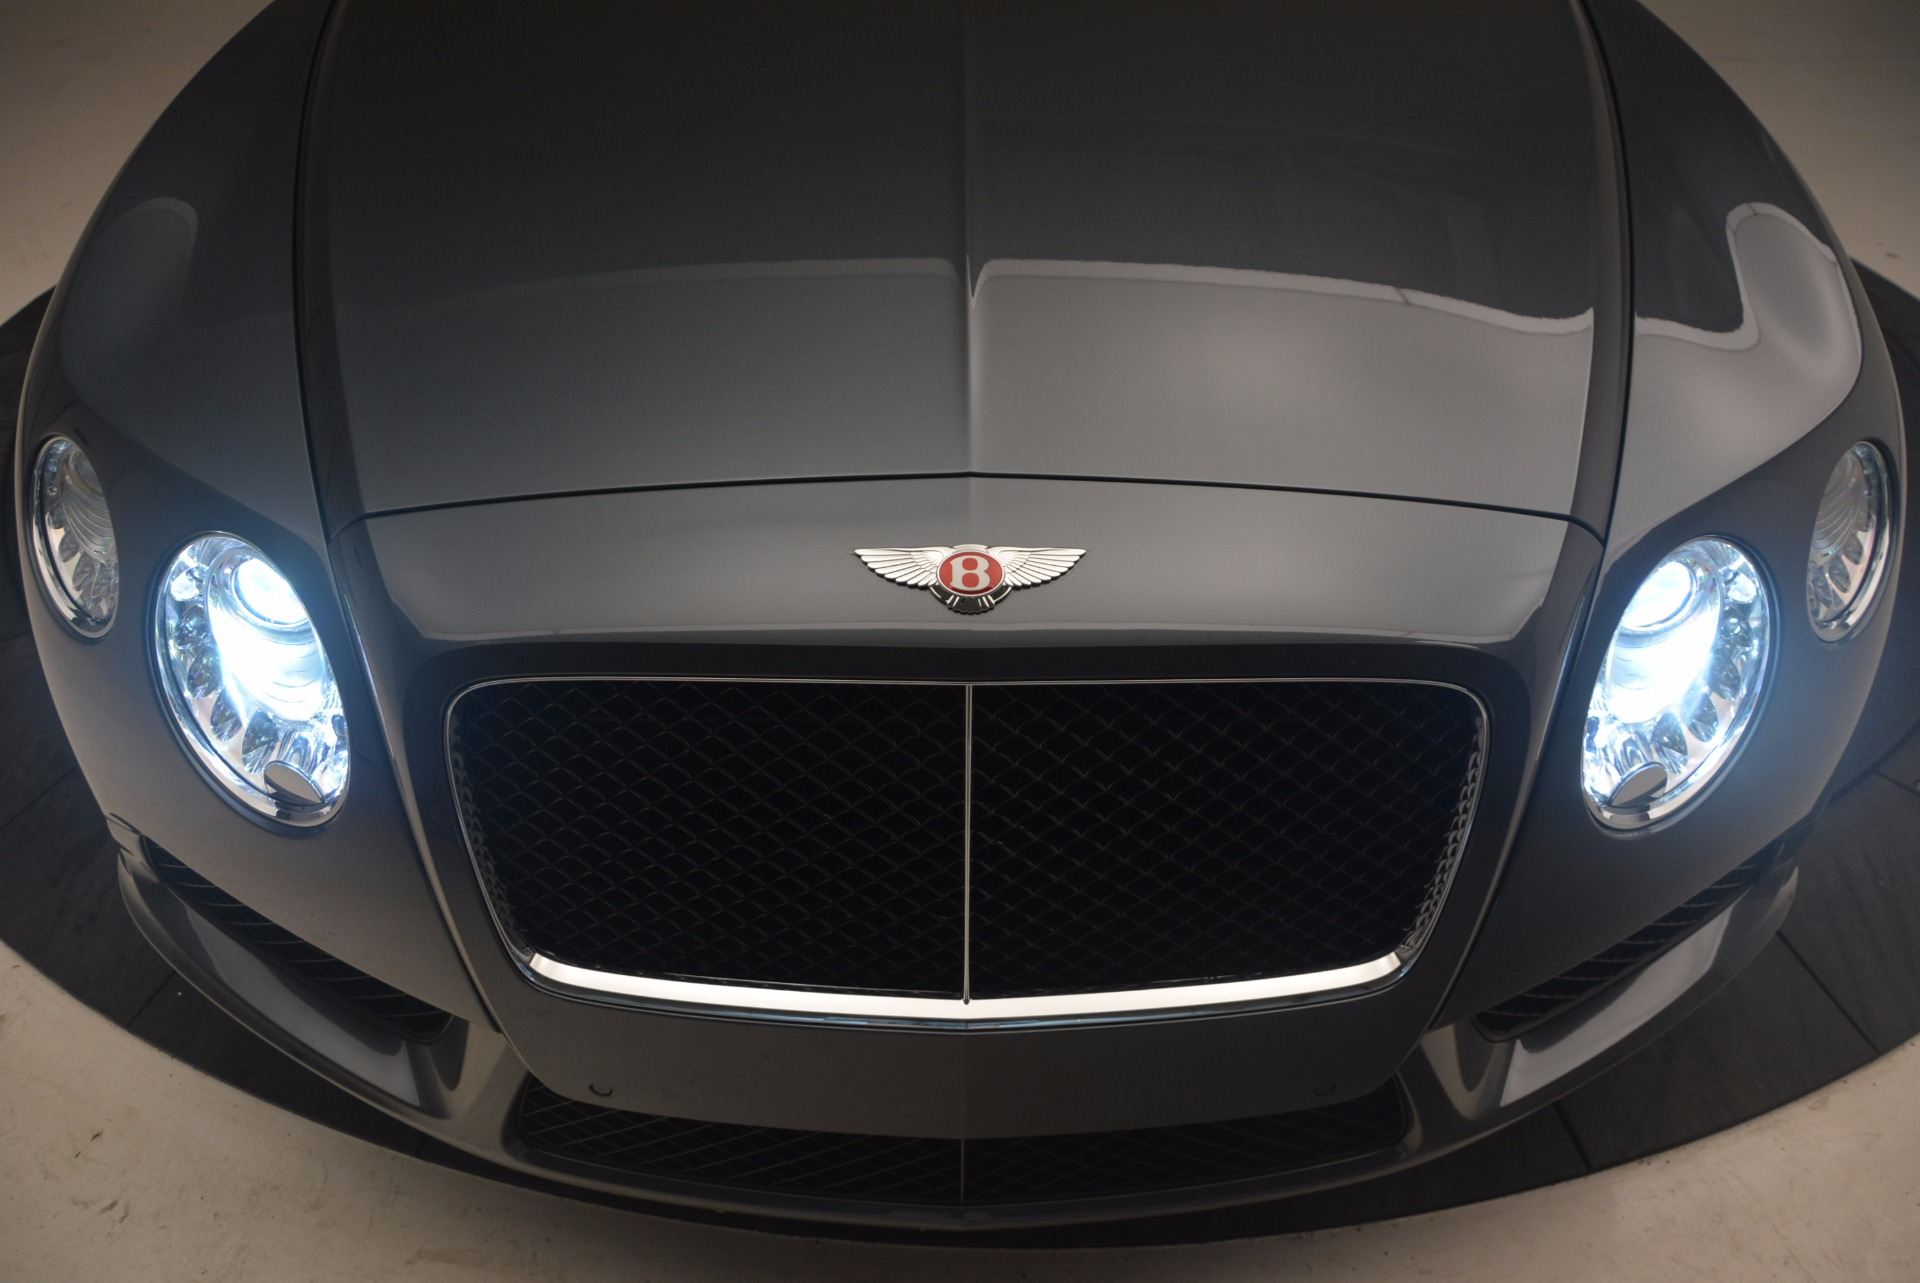 Used 2013 Bentley Continental GT V8 Le Mans Edition, 1 of 48 For Sale In Greenwich, CT 1288_p26